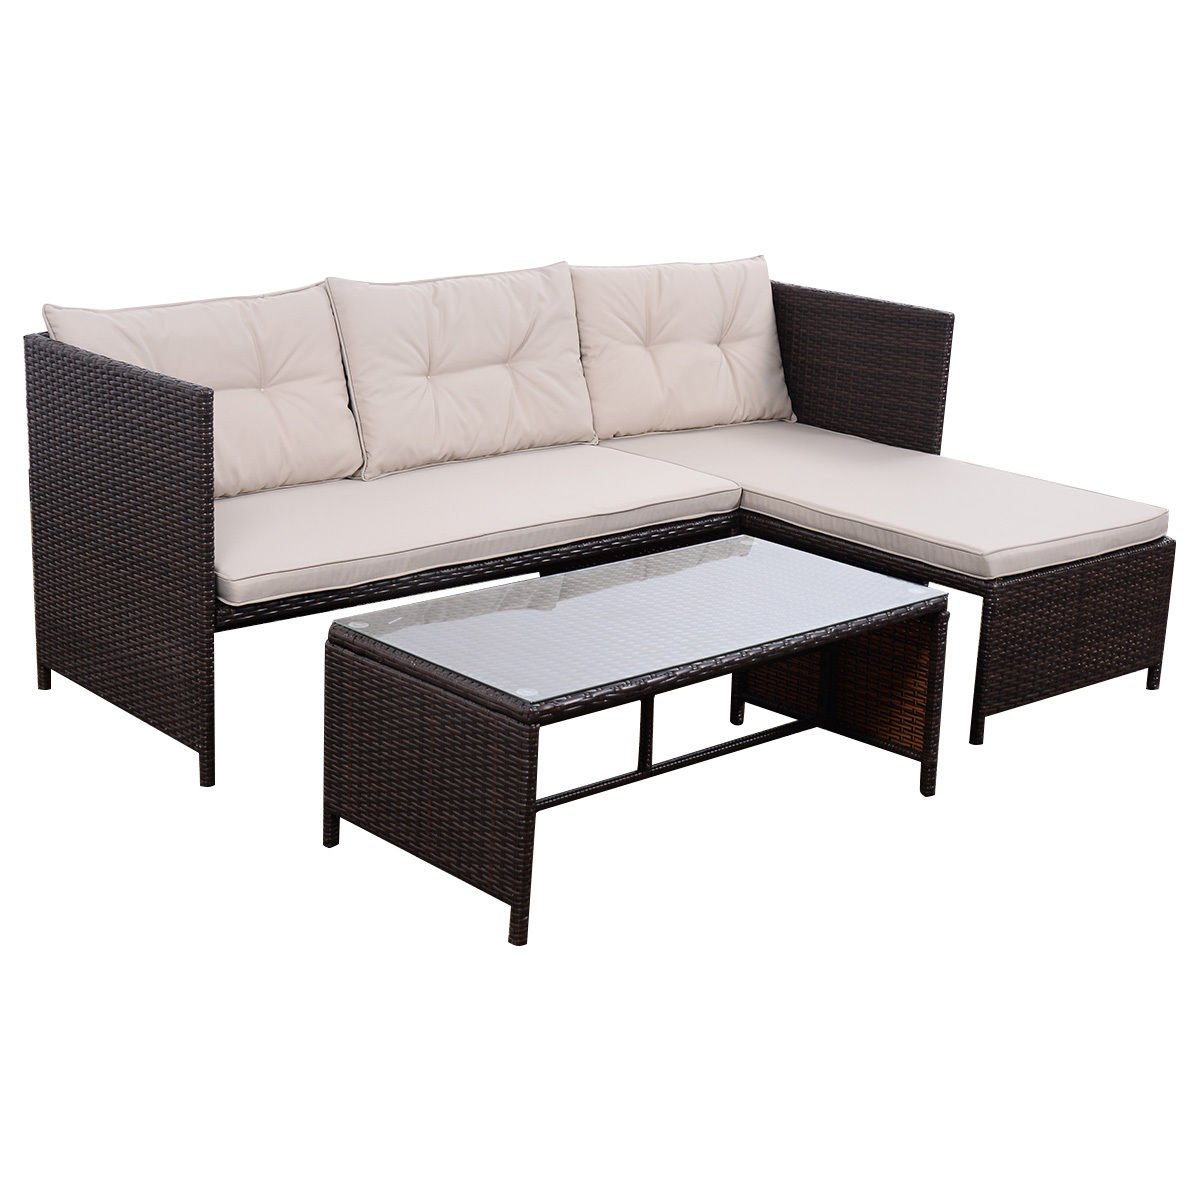 Tangkula 3 PCS Outdoor Rattan Furniture Sofa Set Lounge Chaise Cushioned Patio Garden